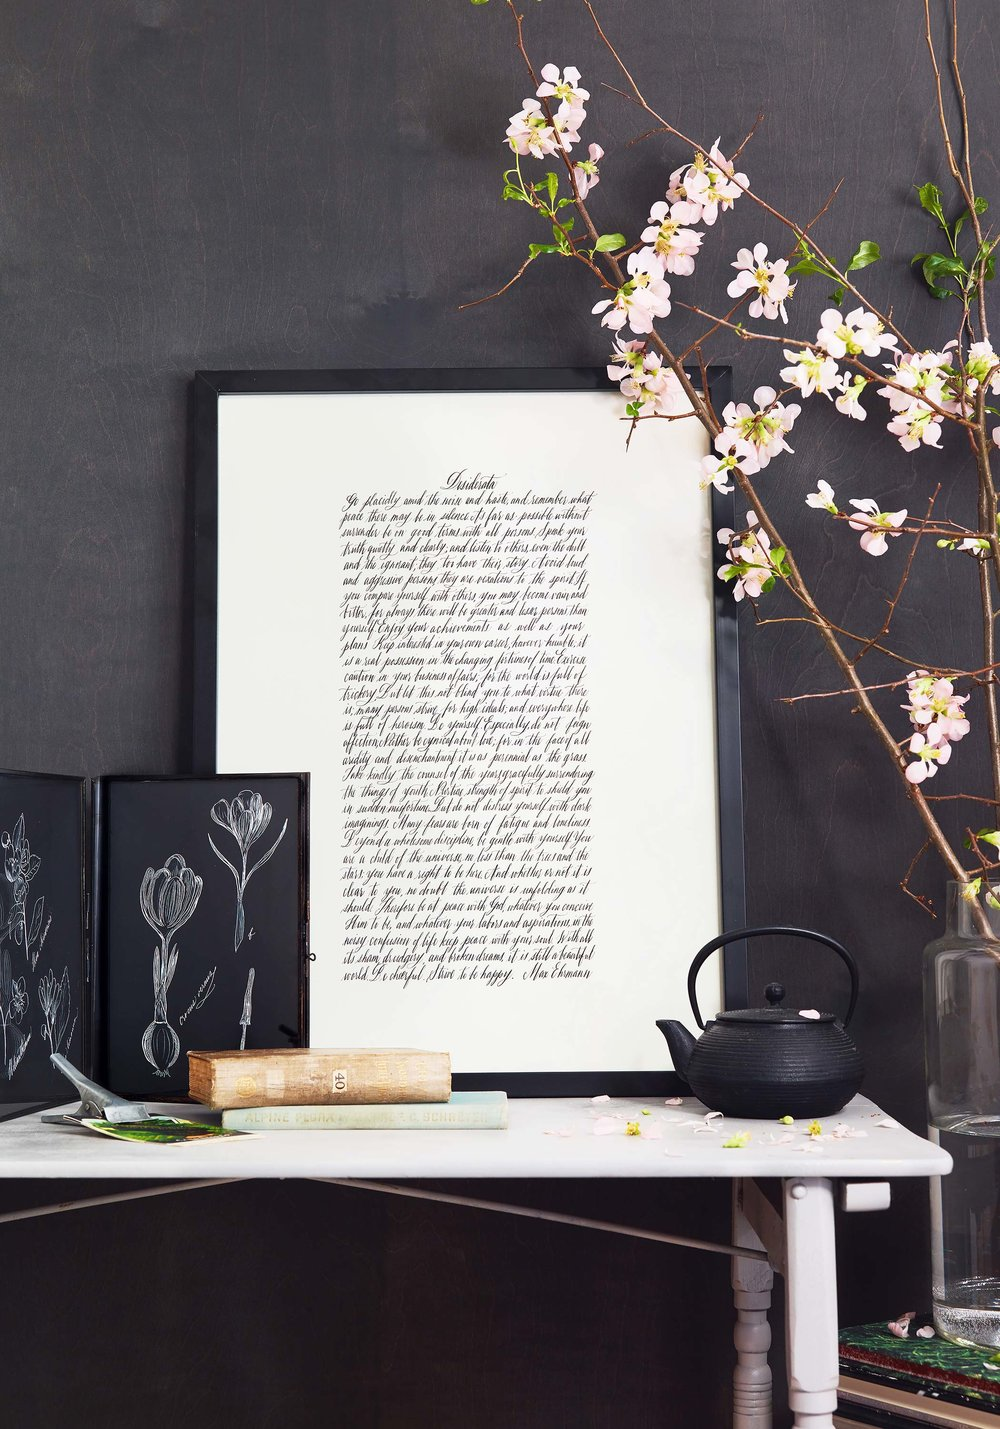 MAYB-The-Gift-of-Calligraphy_4570.jpg